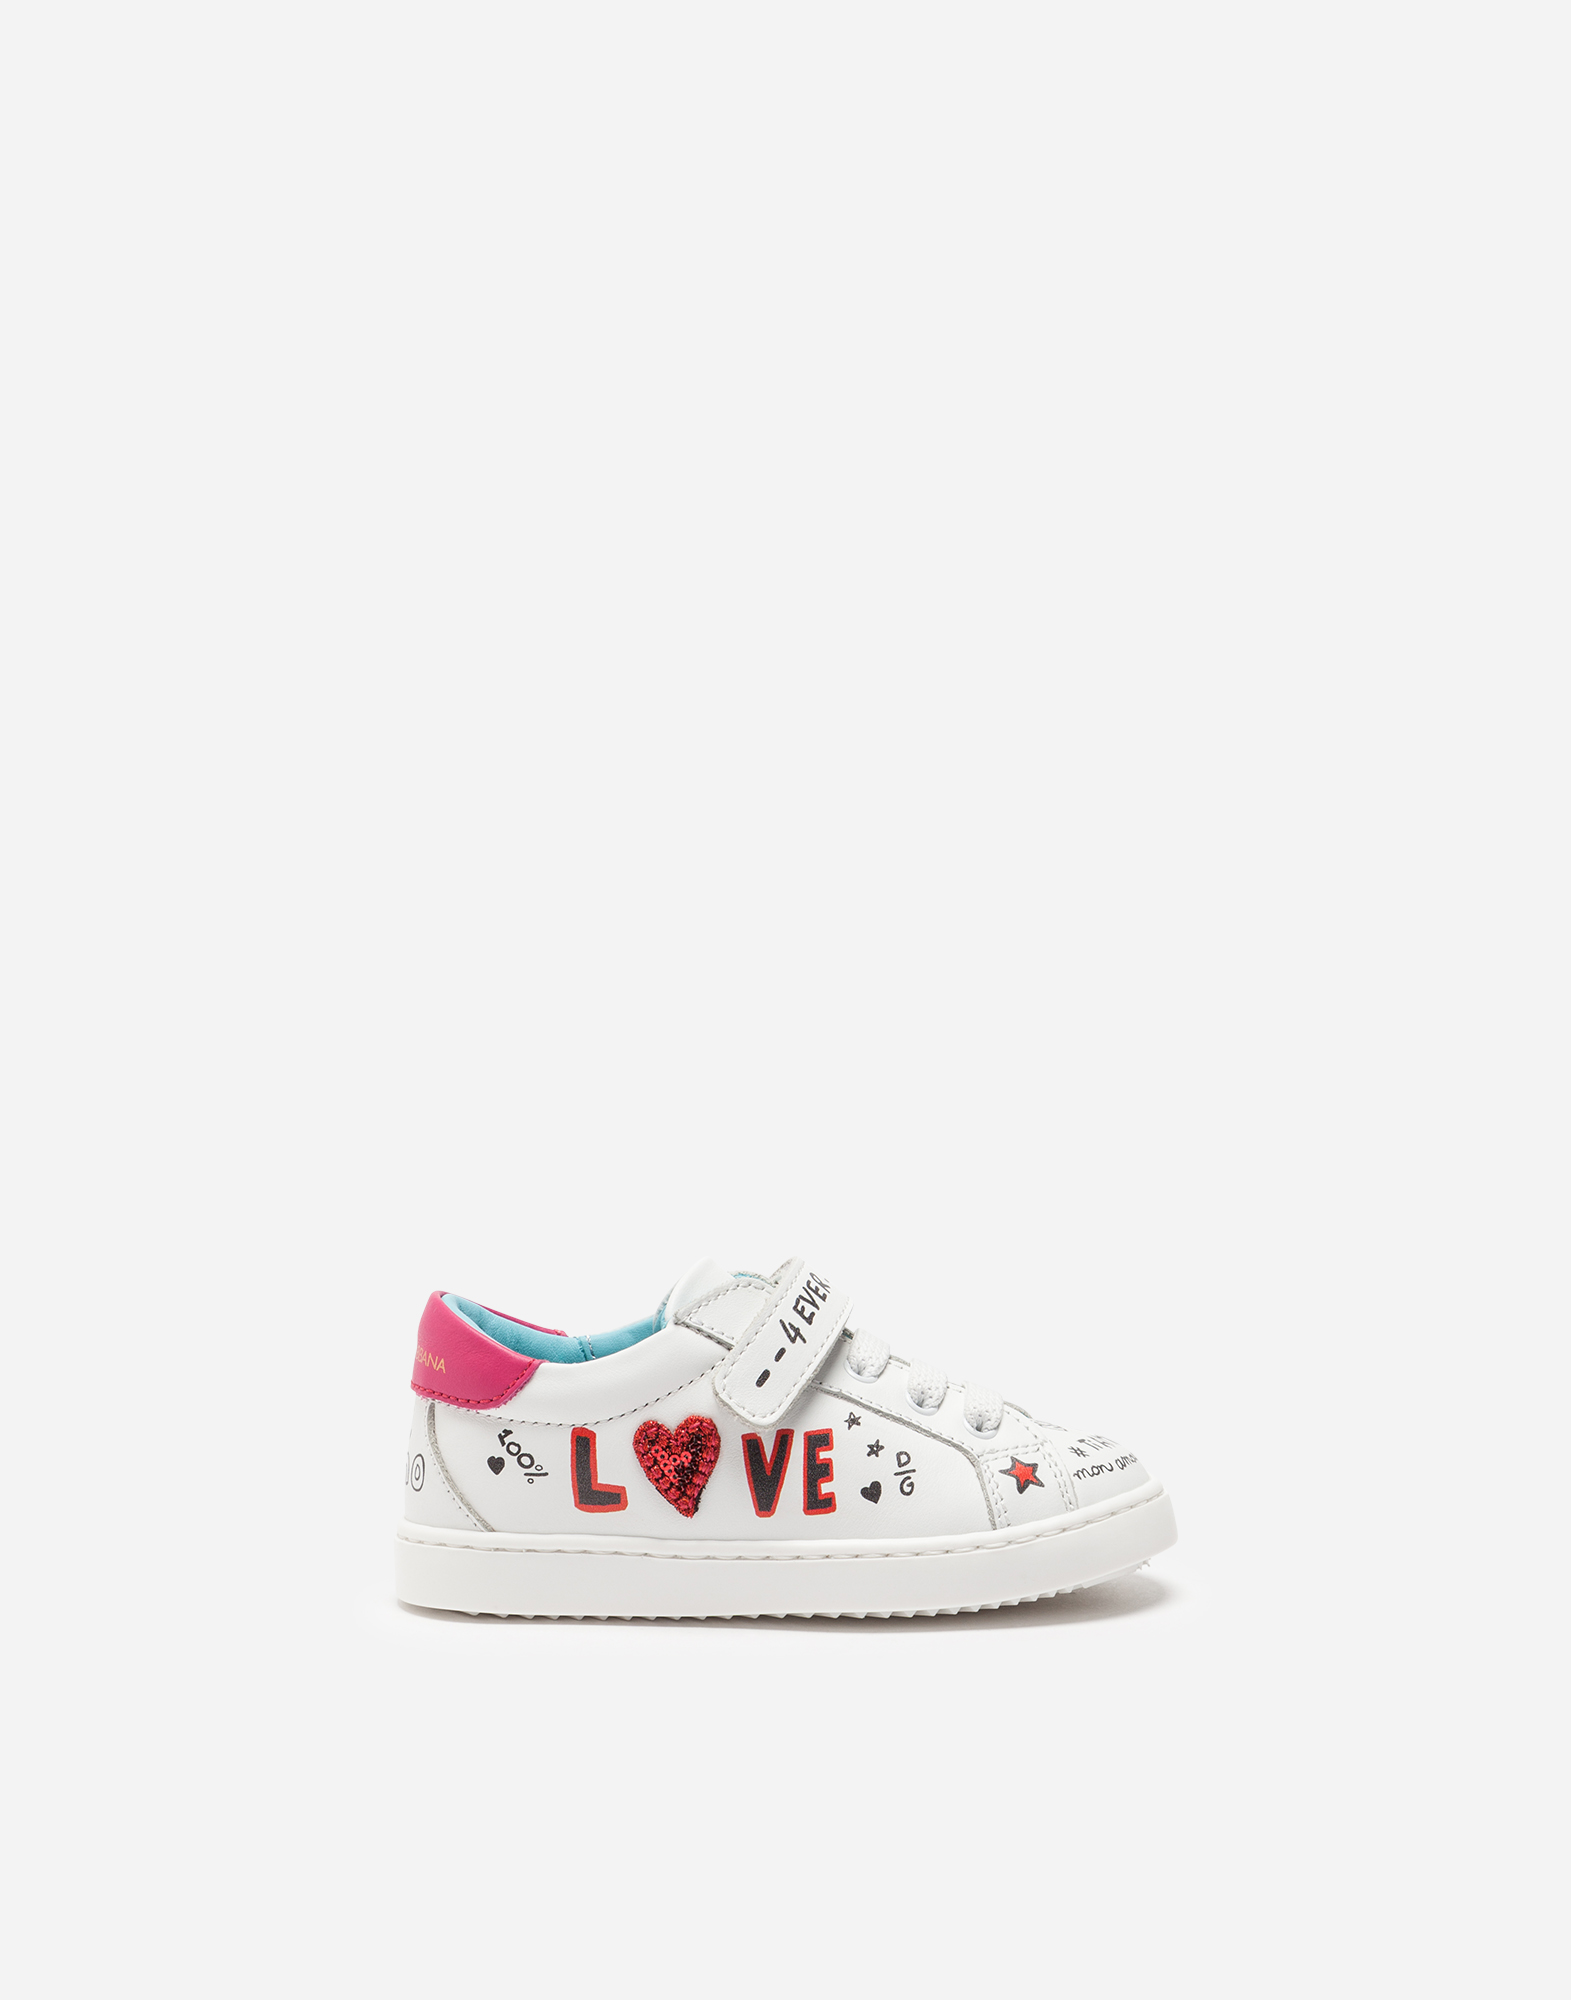 Dolce & Gabbana KID'S FIRST STEPS LEATHER SNEAKERS WITH PATCH